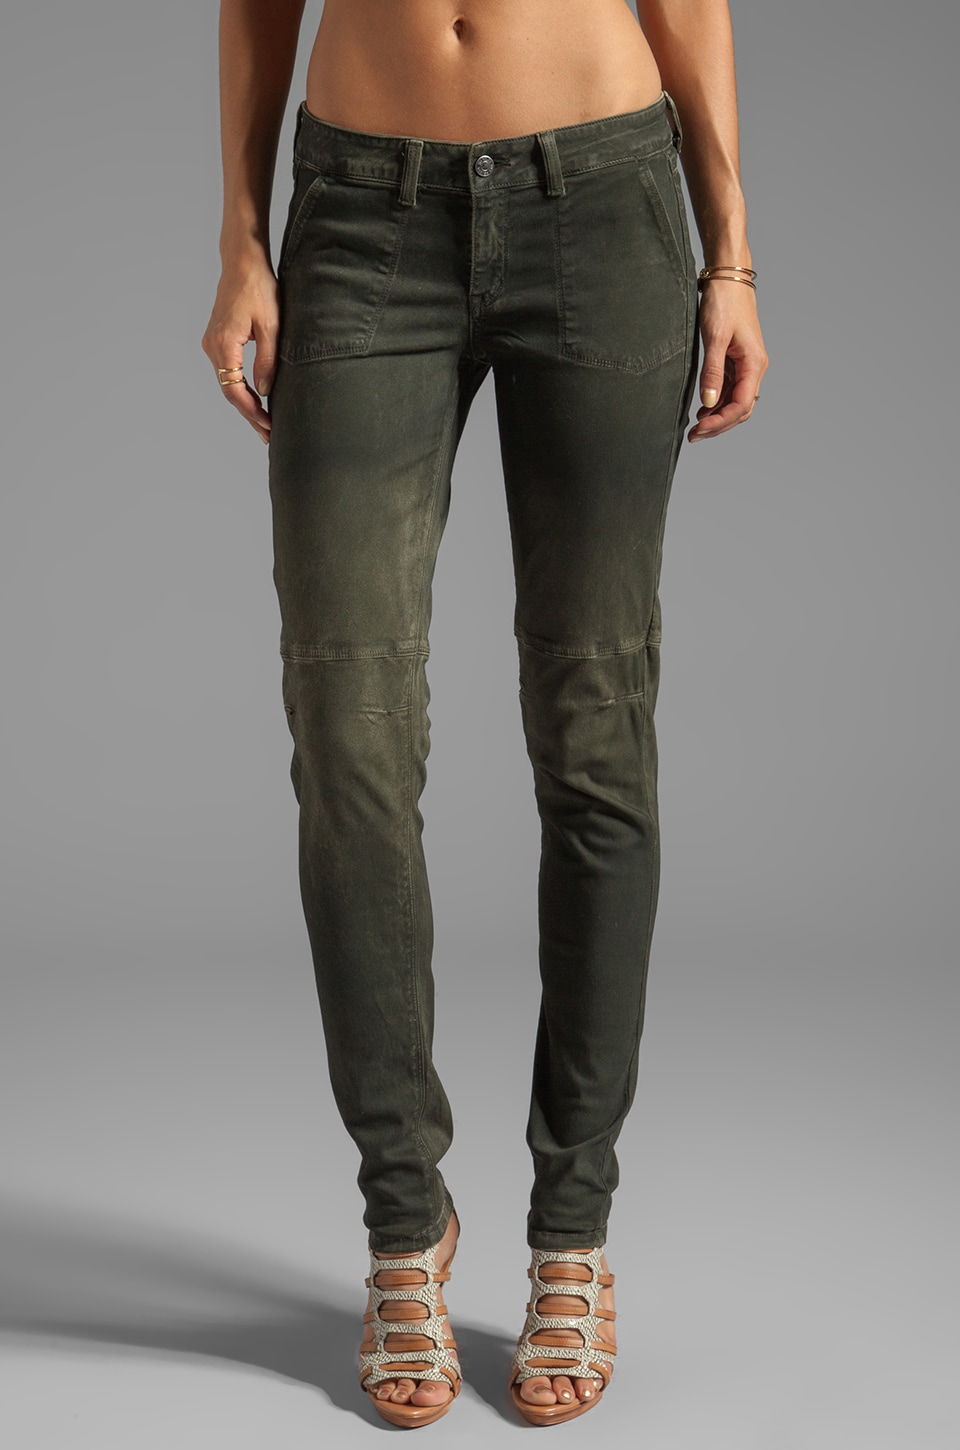 SOLD Design Lab Soho Super Skinny in Olive